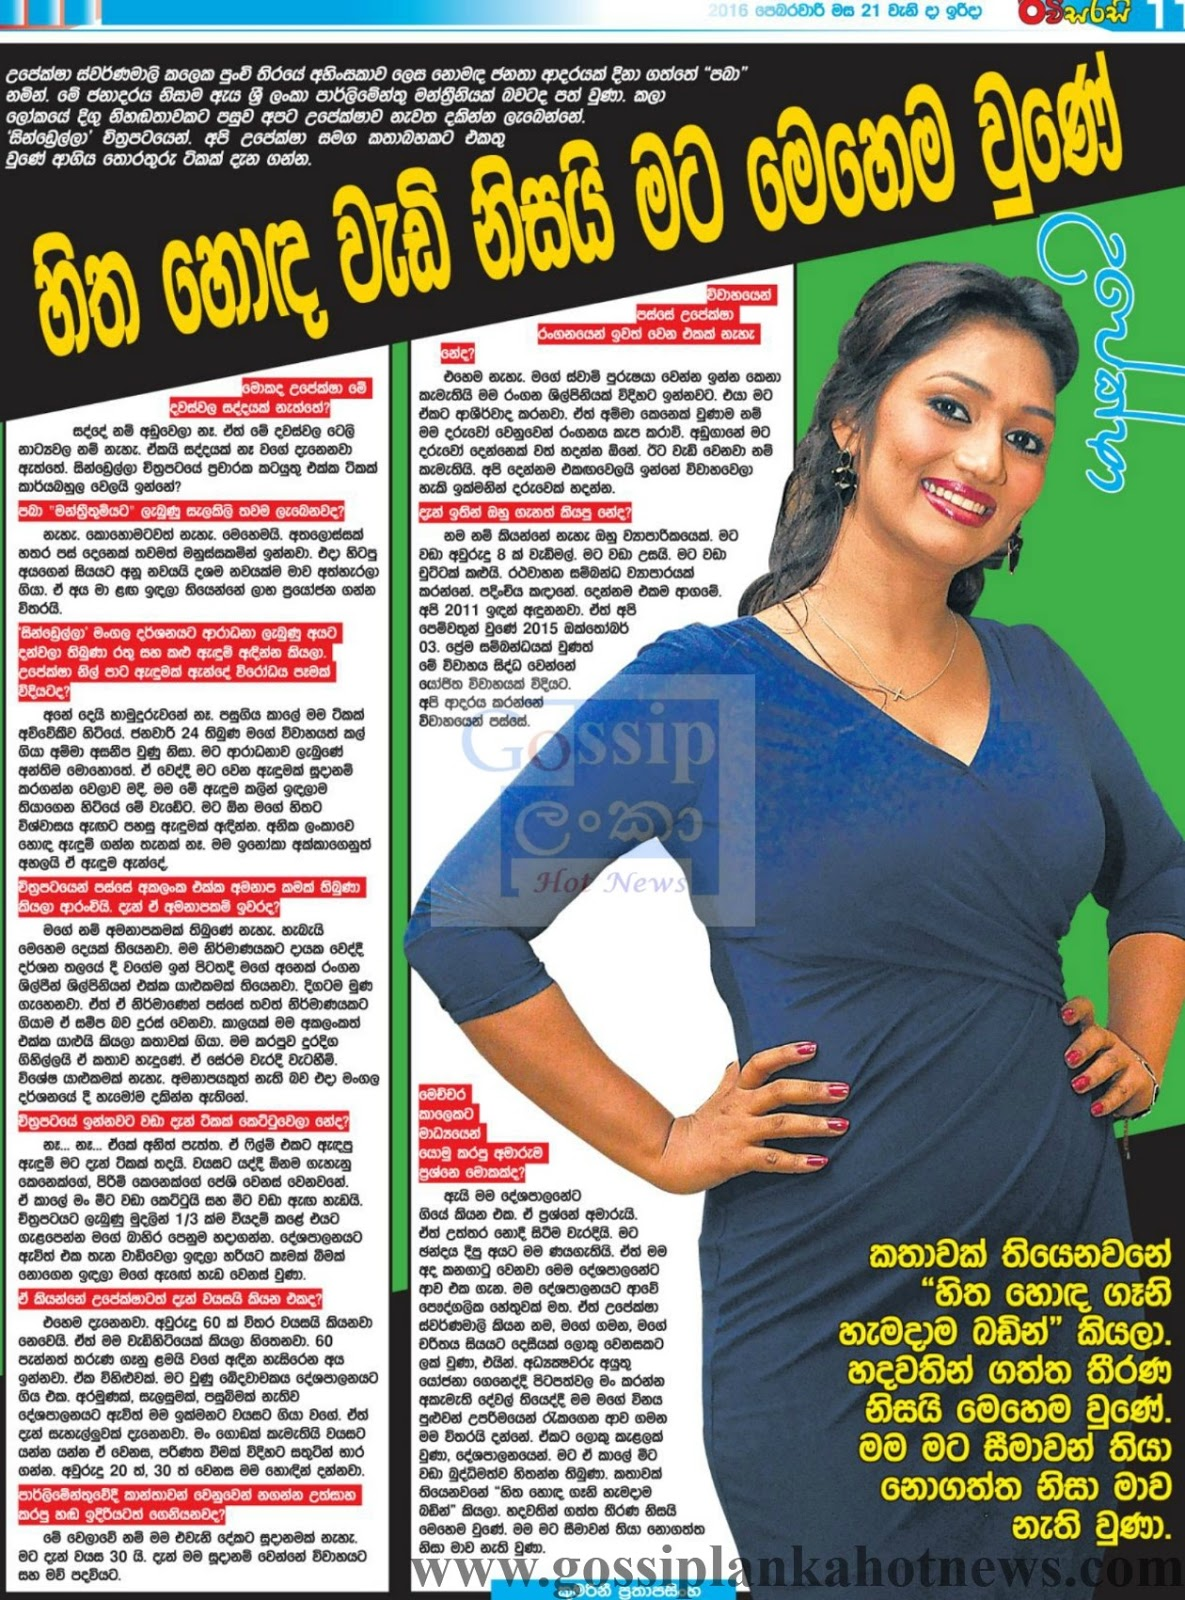 Upeksha Swarnamali Talks About her Second Marriage